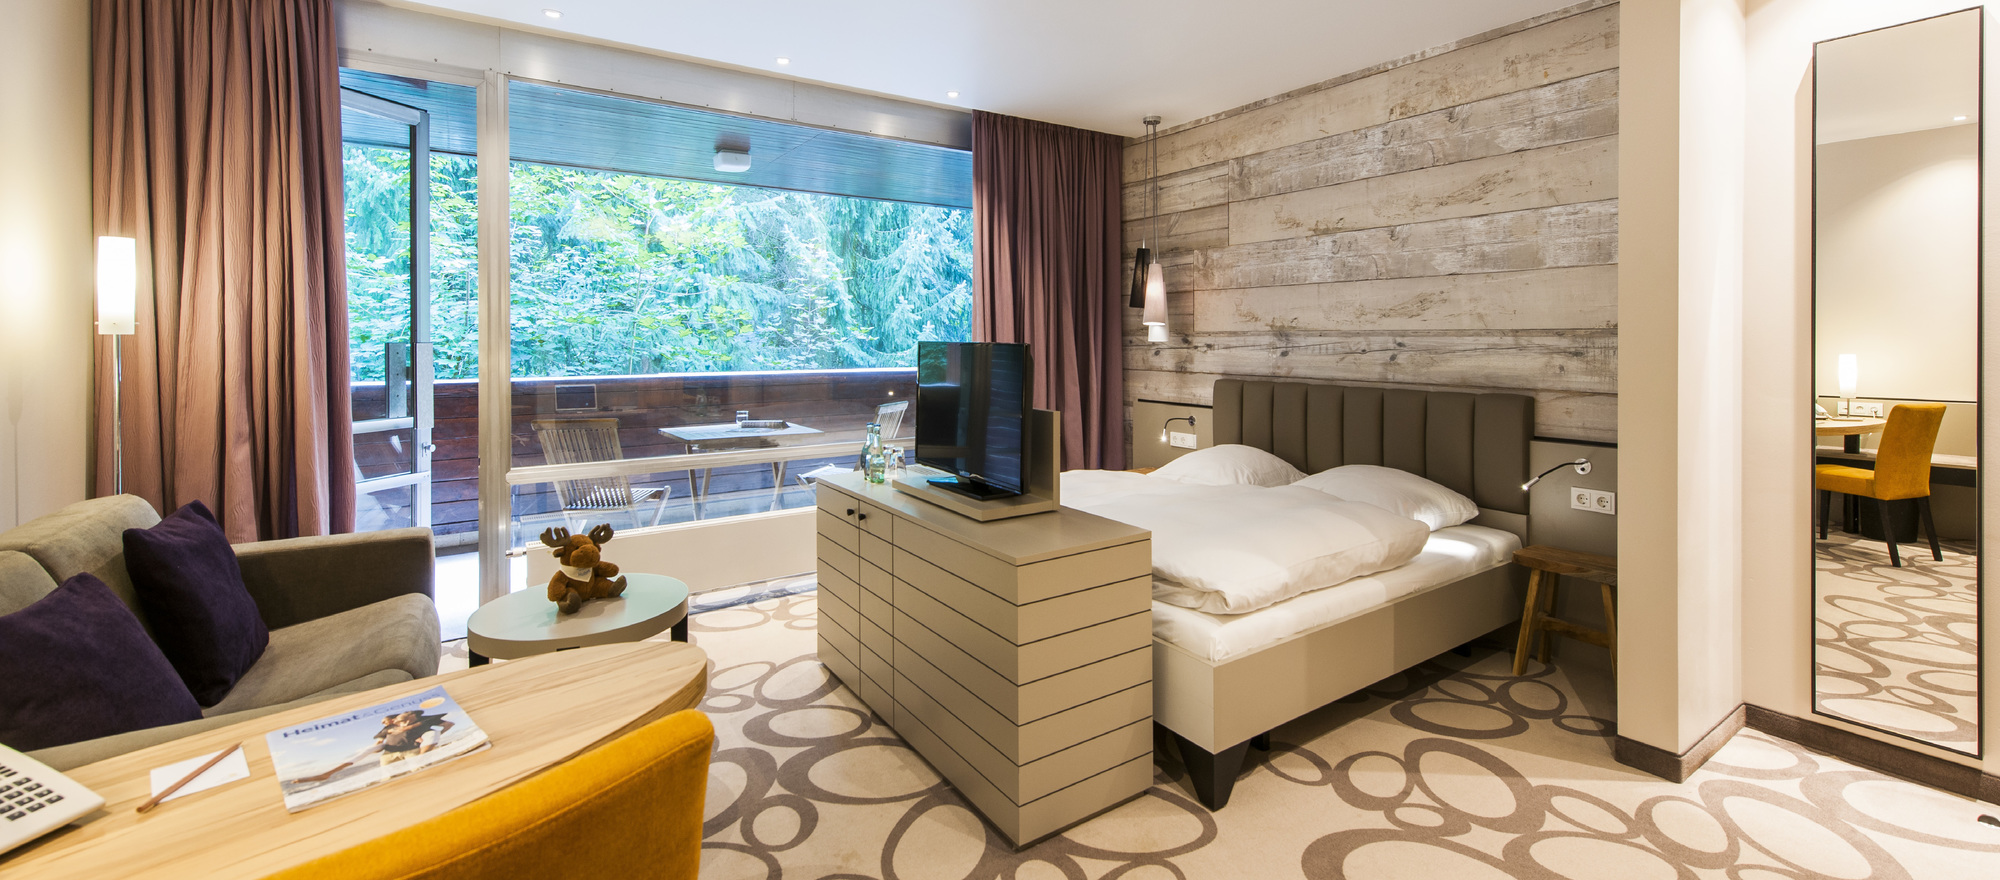 Relax plus room in the Ringhotel Schorfheide | Tagungszentrum der Wirtschaft in Joachimsthal, 4-stars hotel close to Berlin